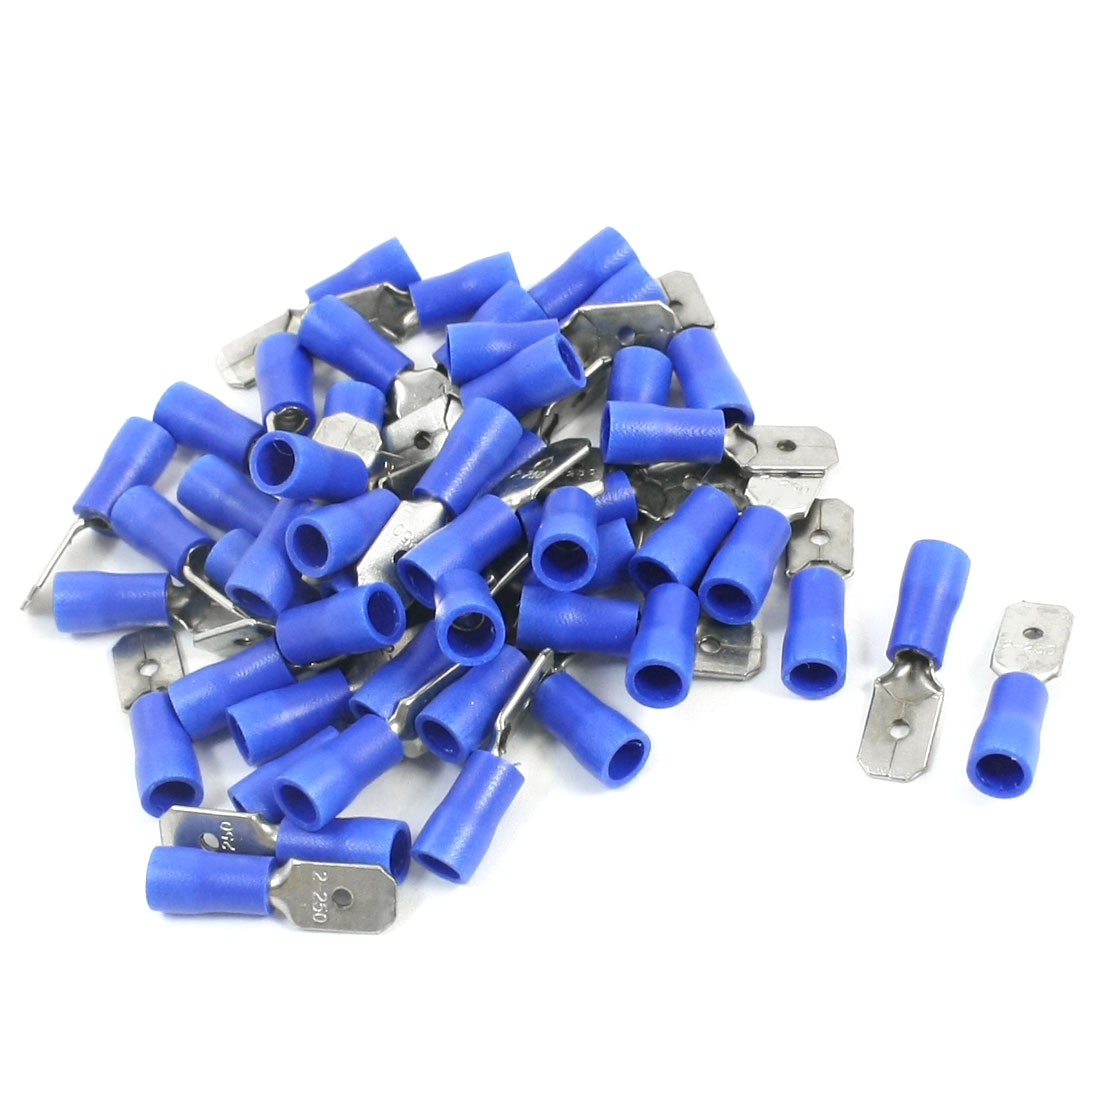 50Pcs 16-14 AWG MDD2-250 Blue PVC Sleeve Insulated Cable Terminals Crimp